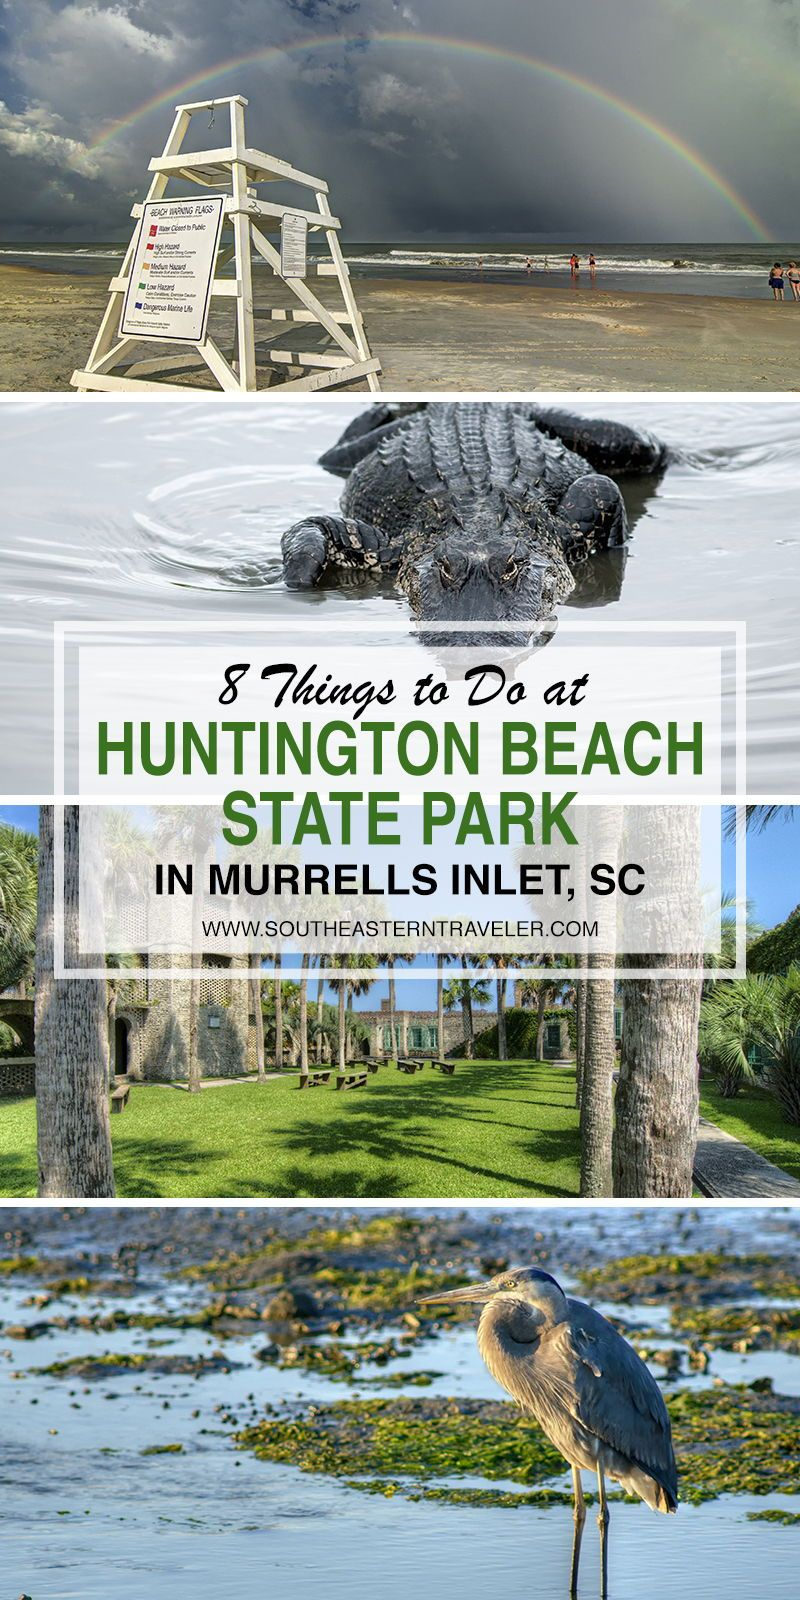 8 Things To Do At Huntington Beach State Park In Murrells Inlet Sc State Parks Travel South Top Road Trips